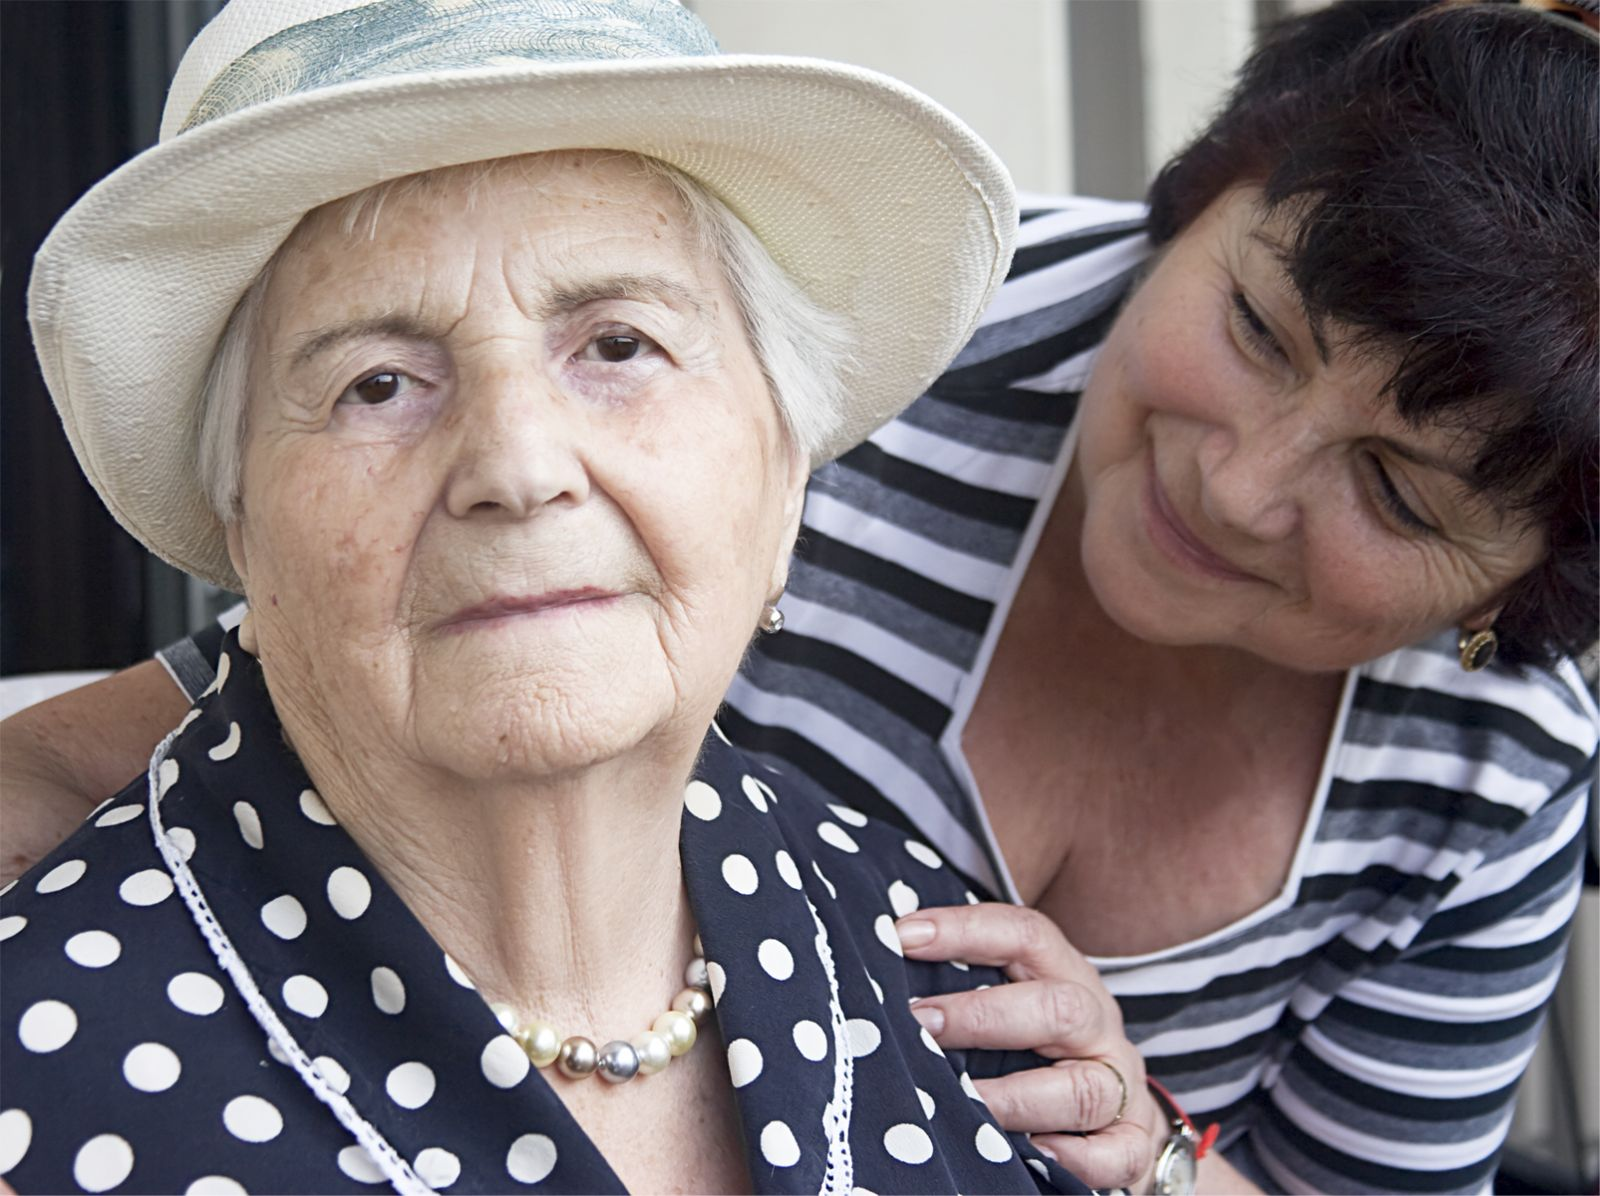 Practical advice for helping people with dementia with their daily routines